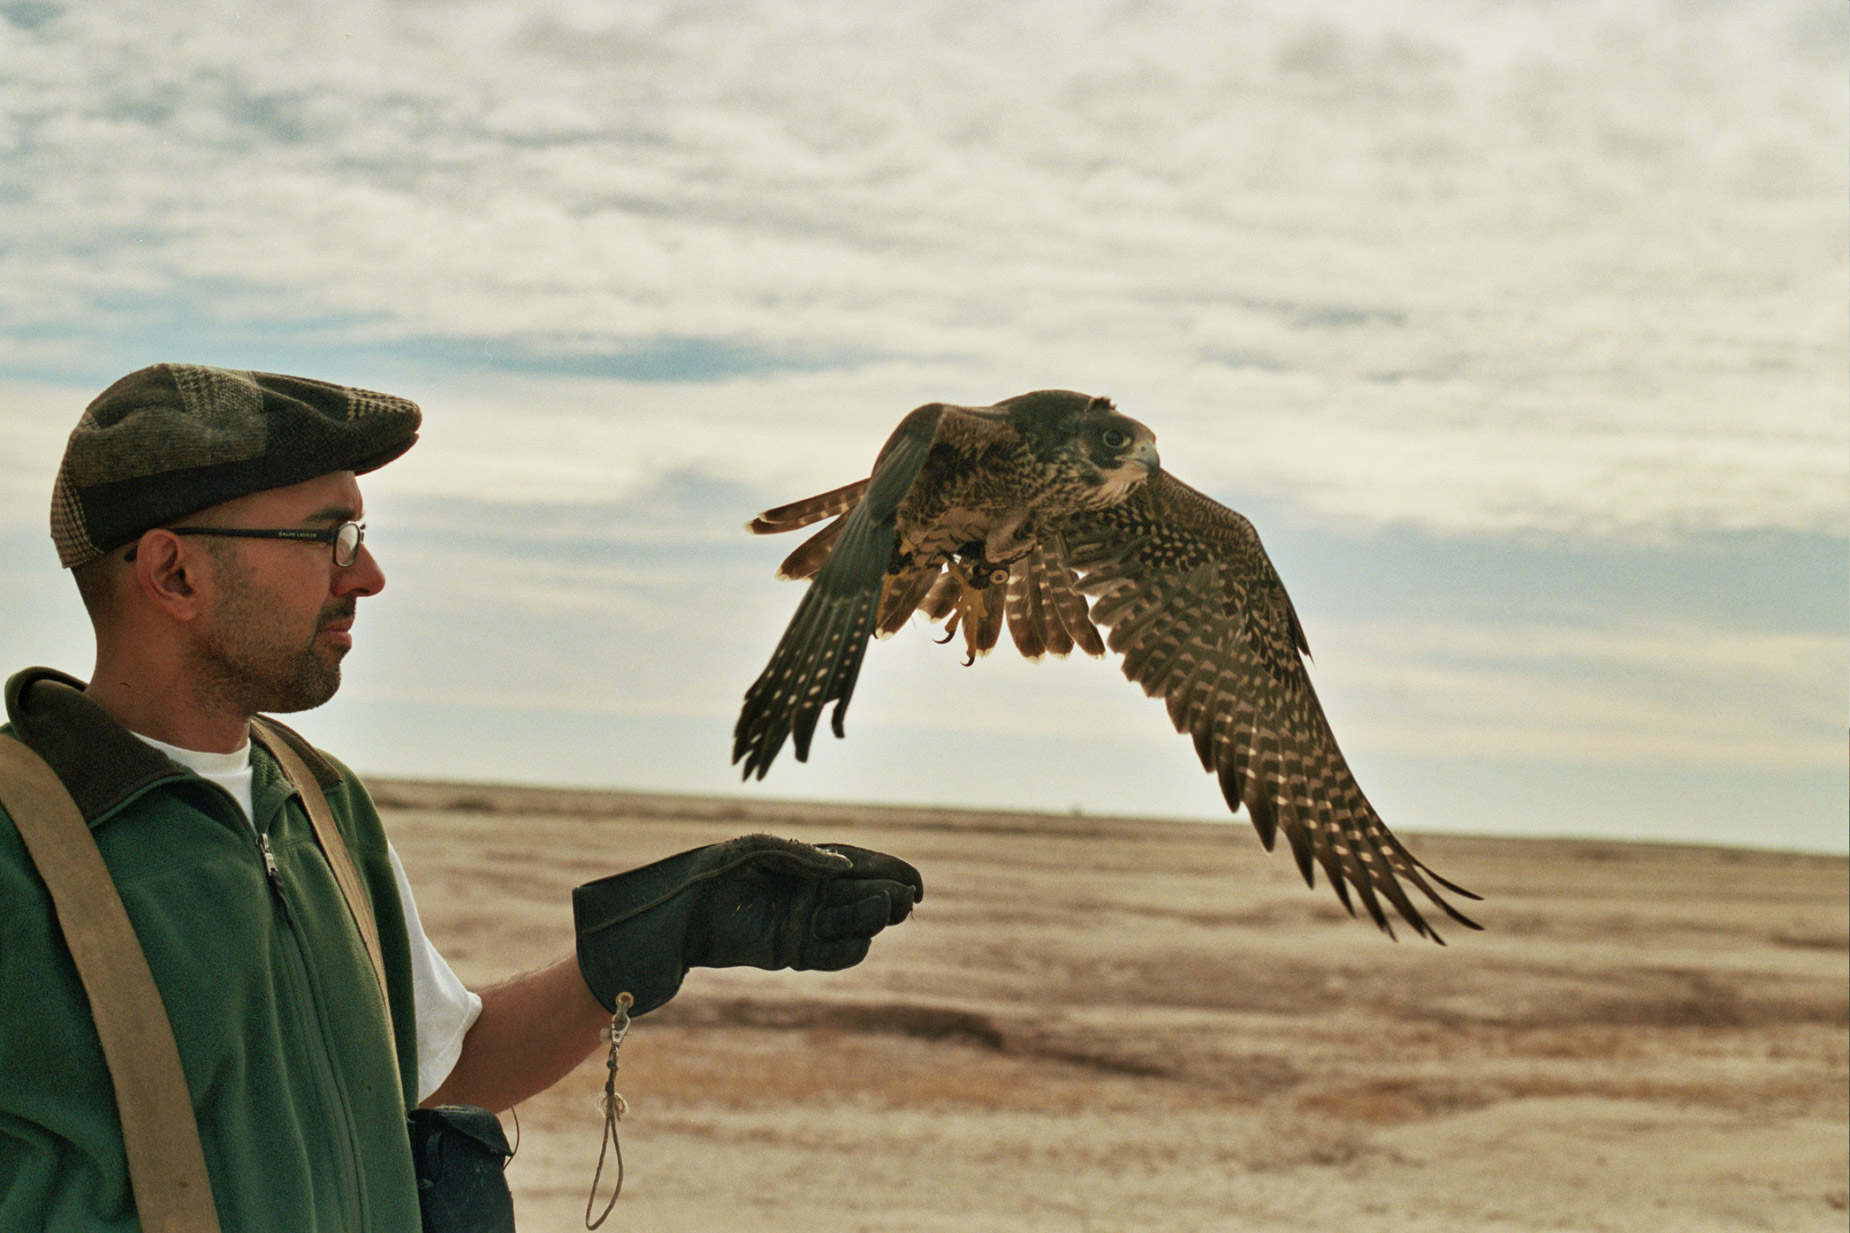 alex_aristei_Falconry_0051